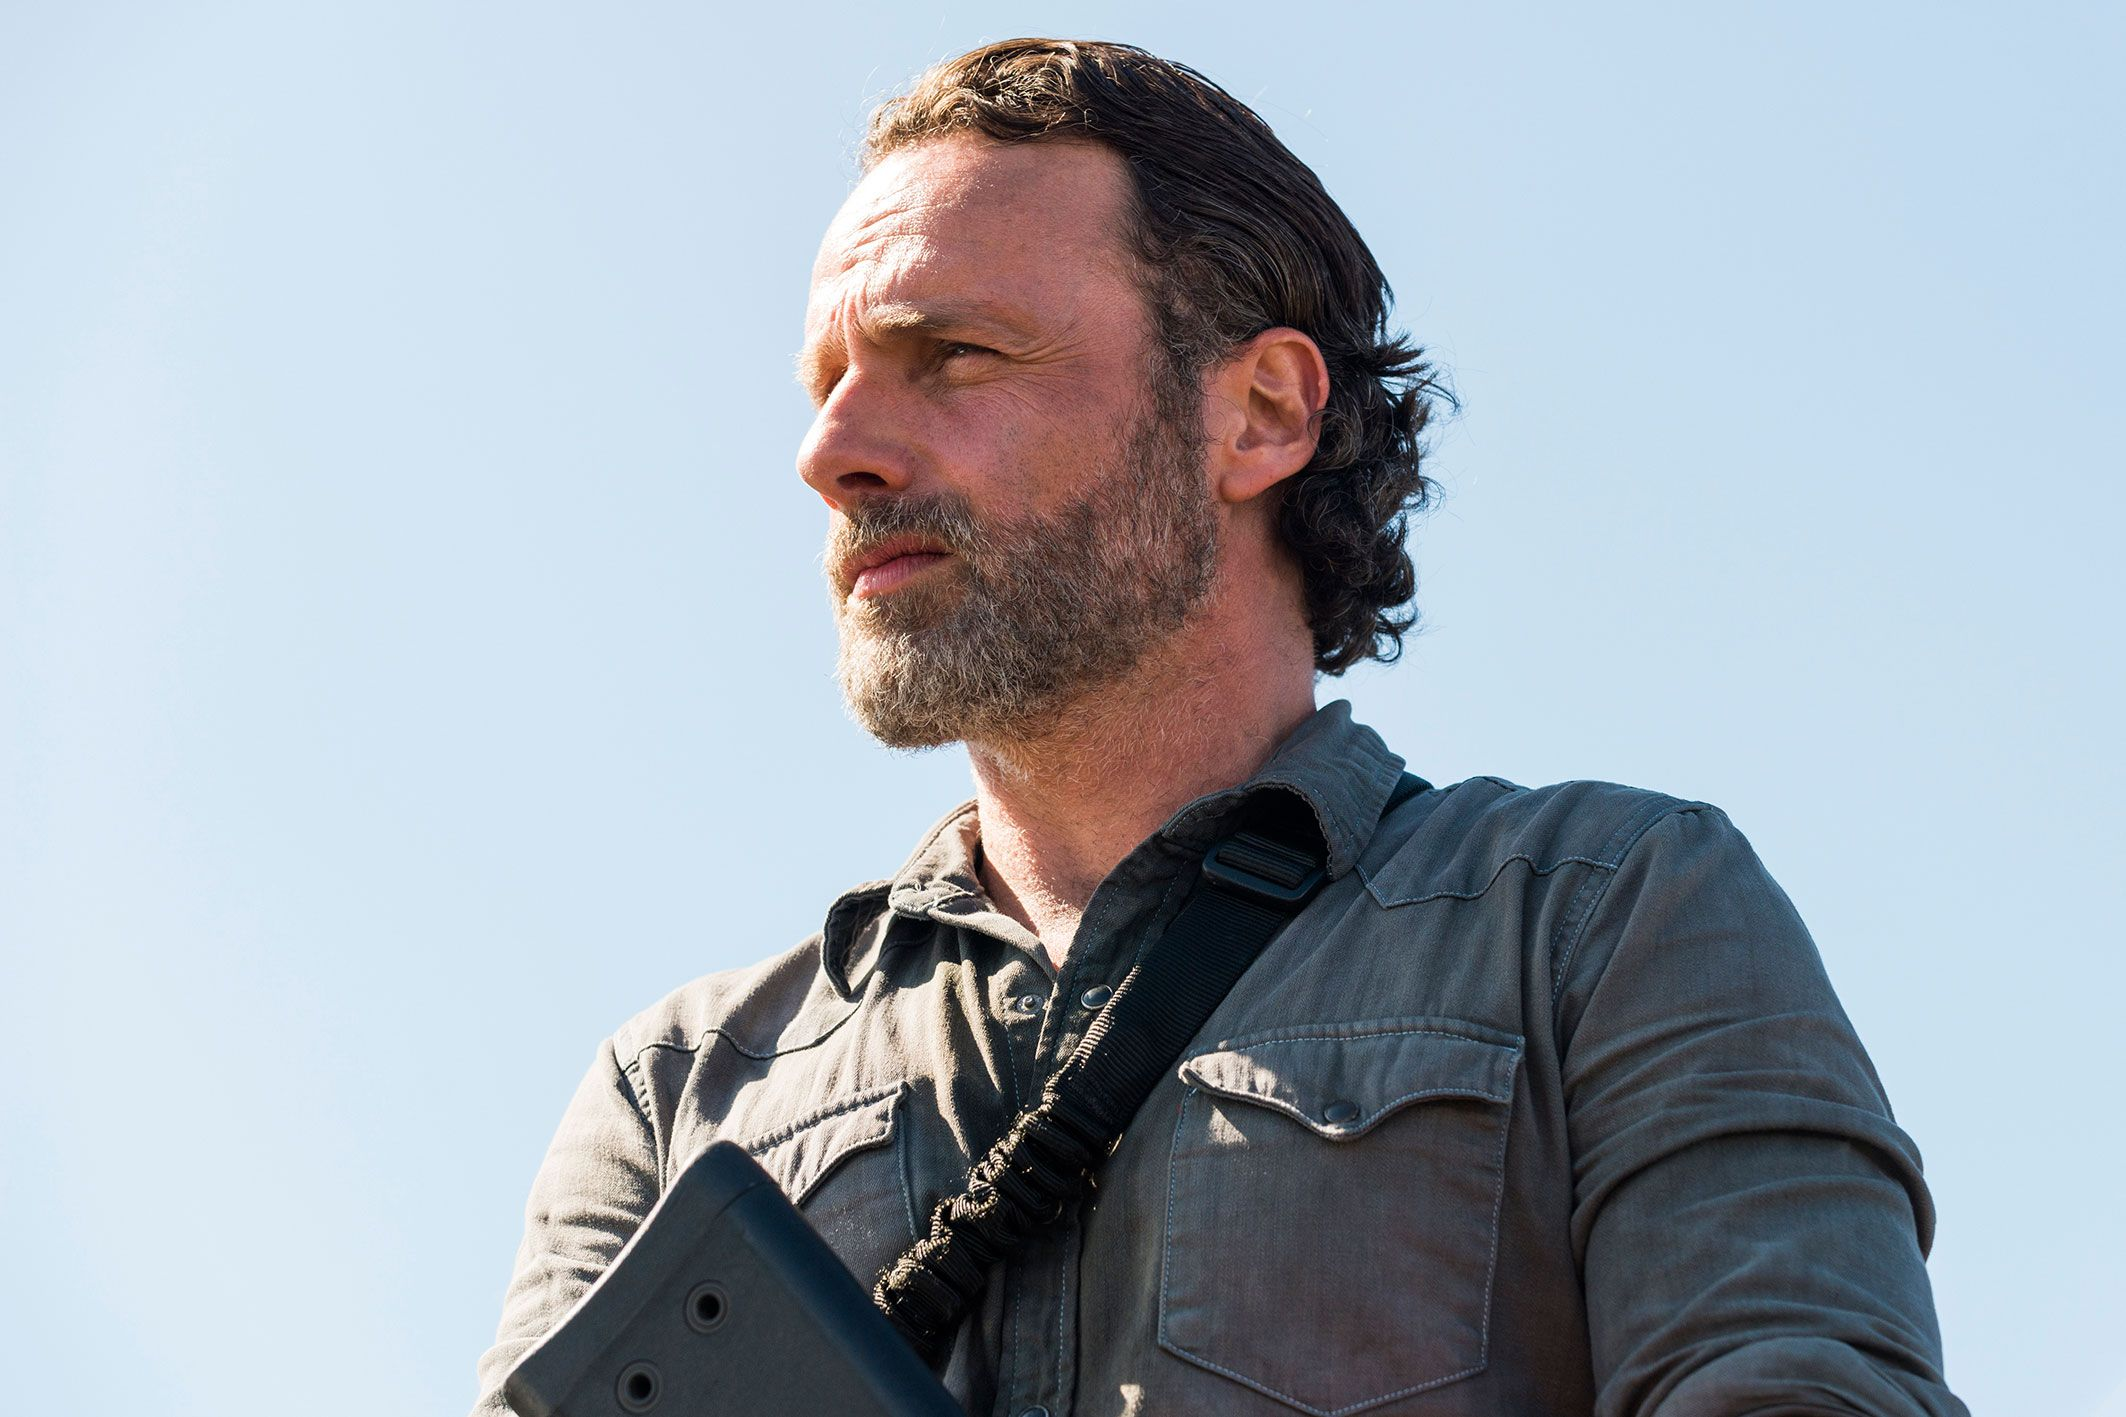 First look at The Walking Dead's Andrew Lincoln in new movie